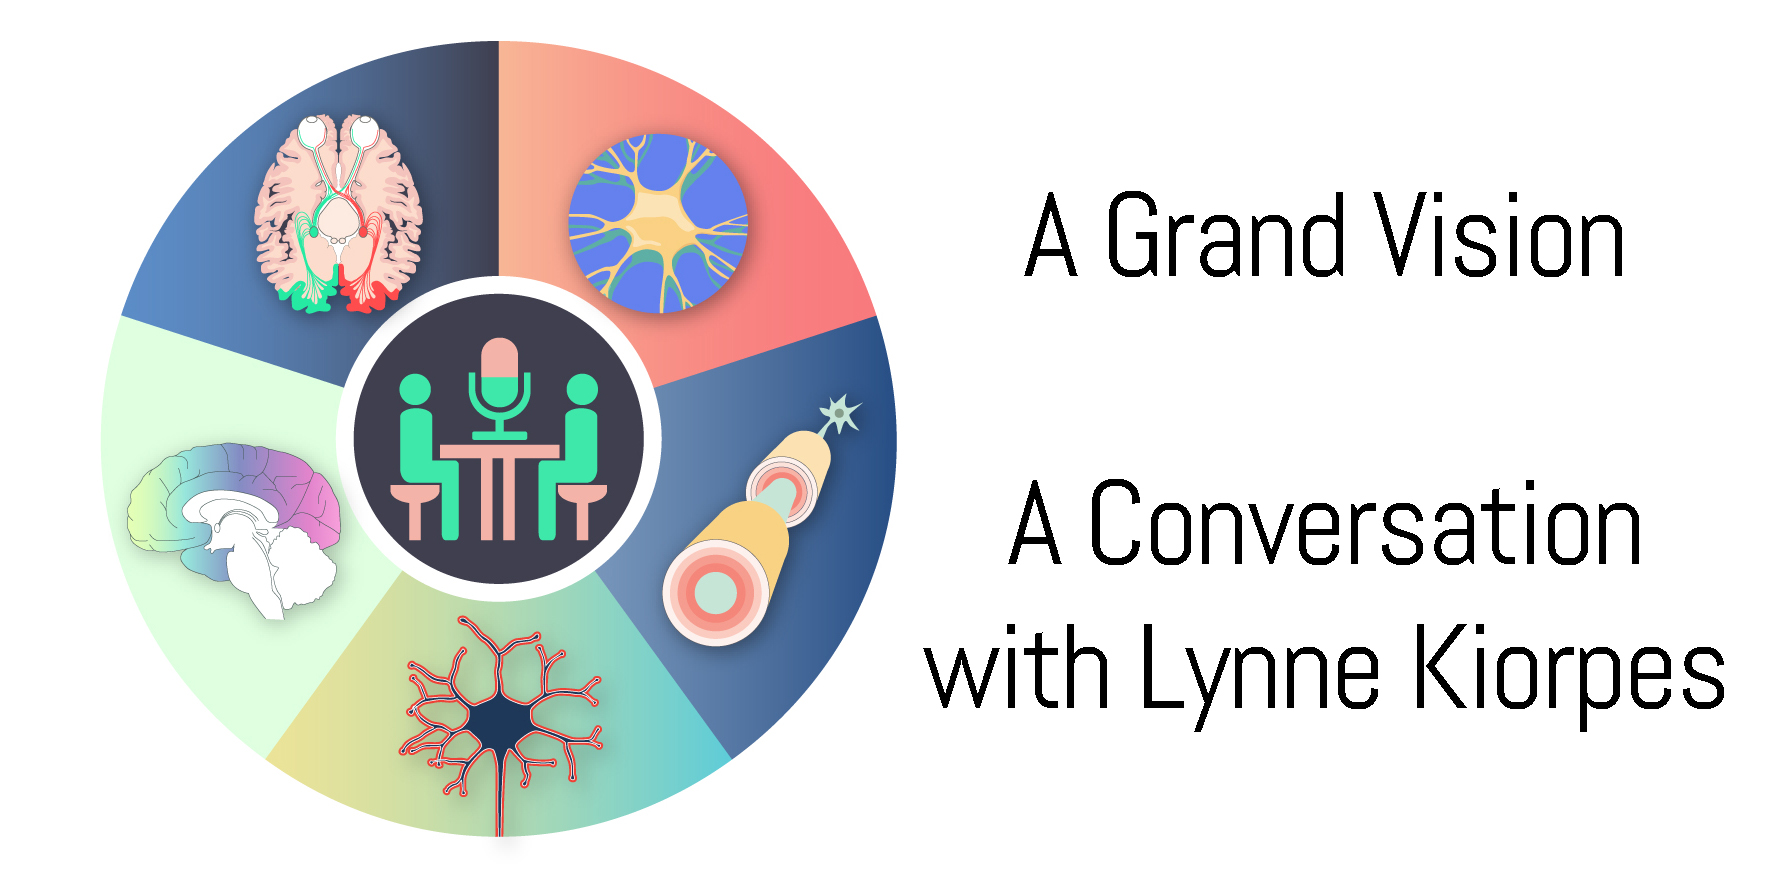 A Grand Vision: A Conversation with Lynne Kiorpes